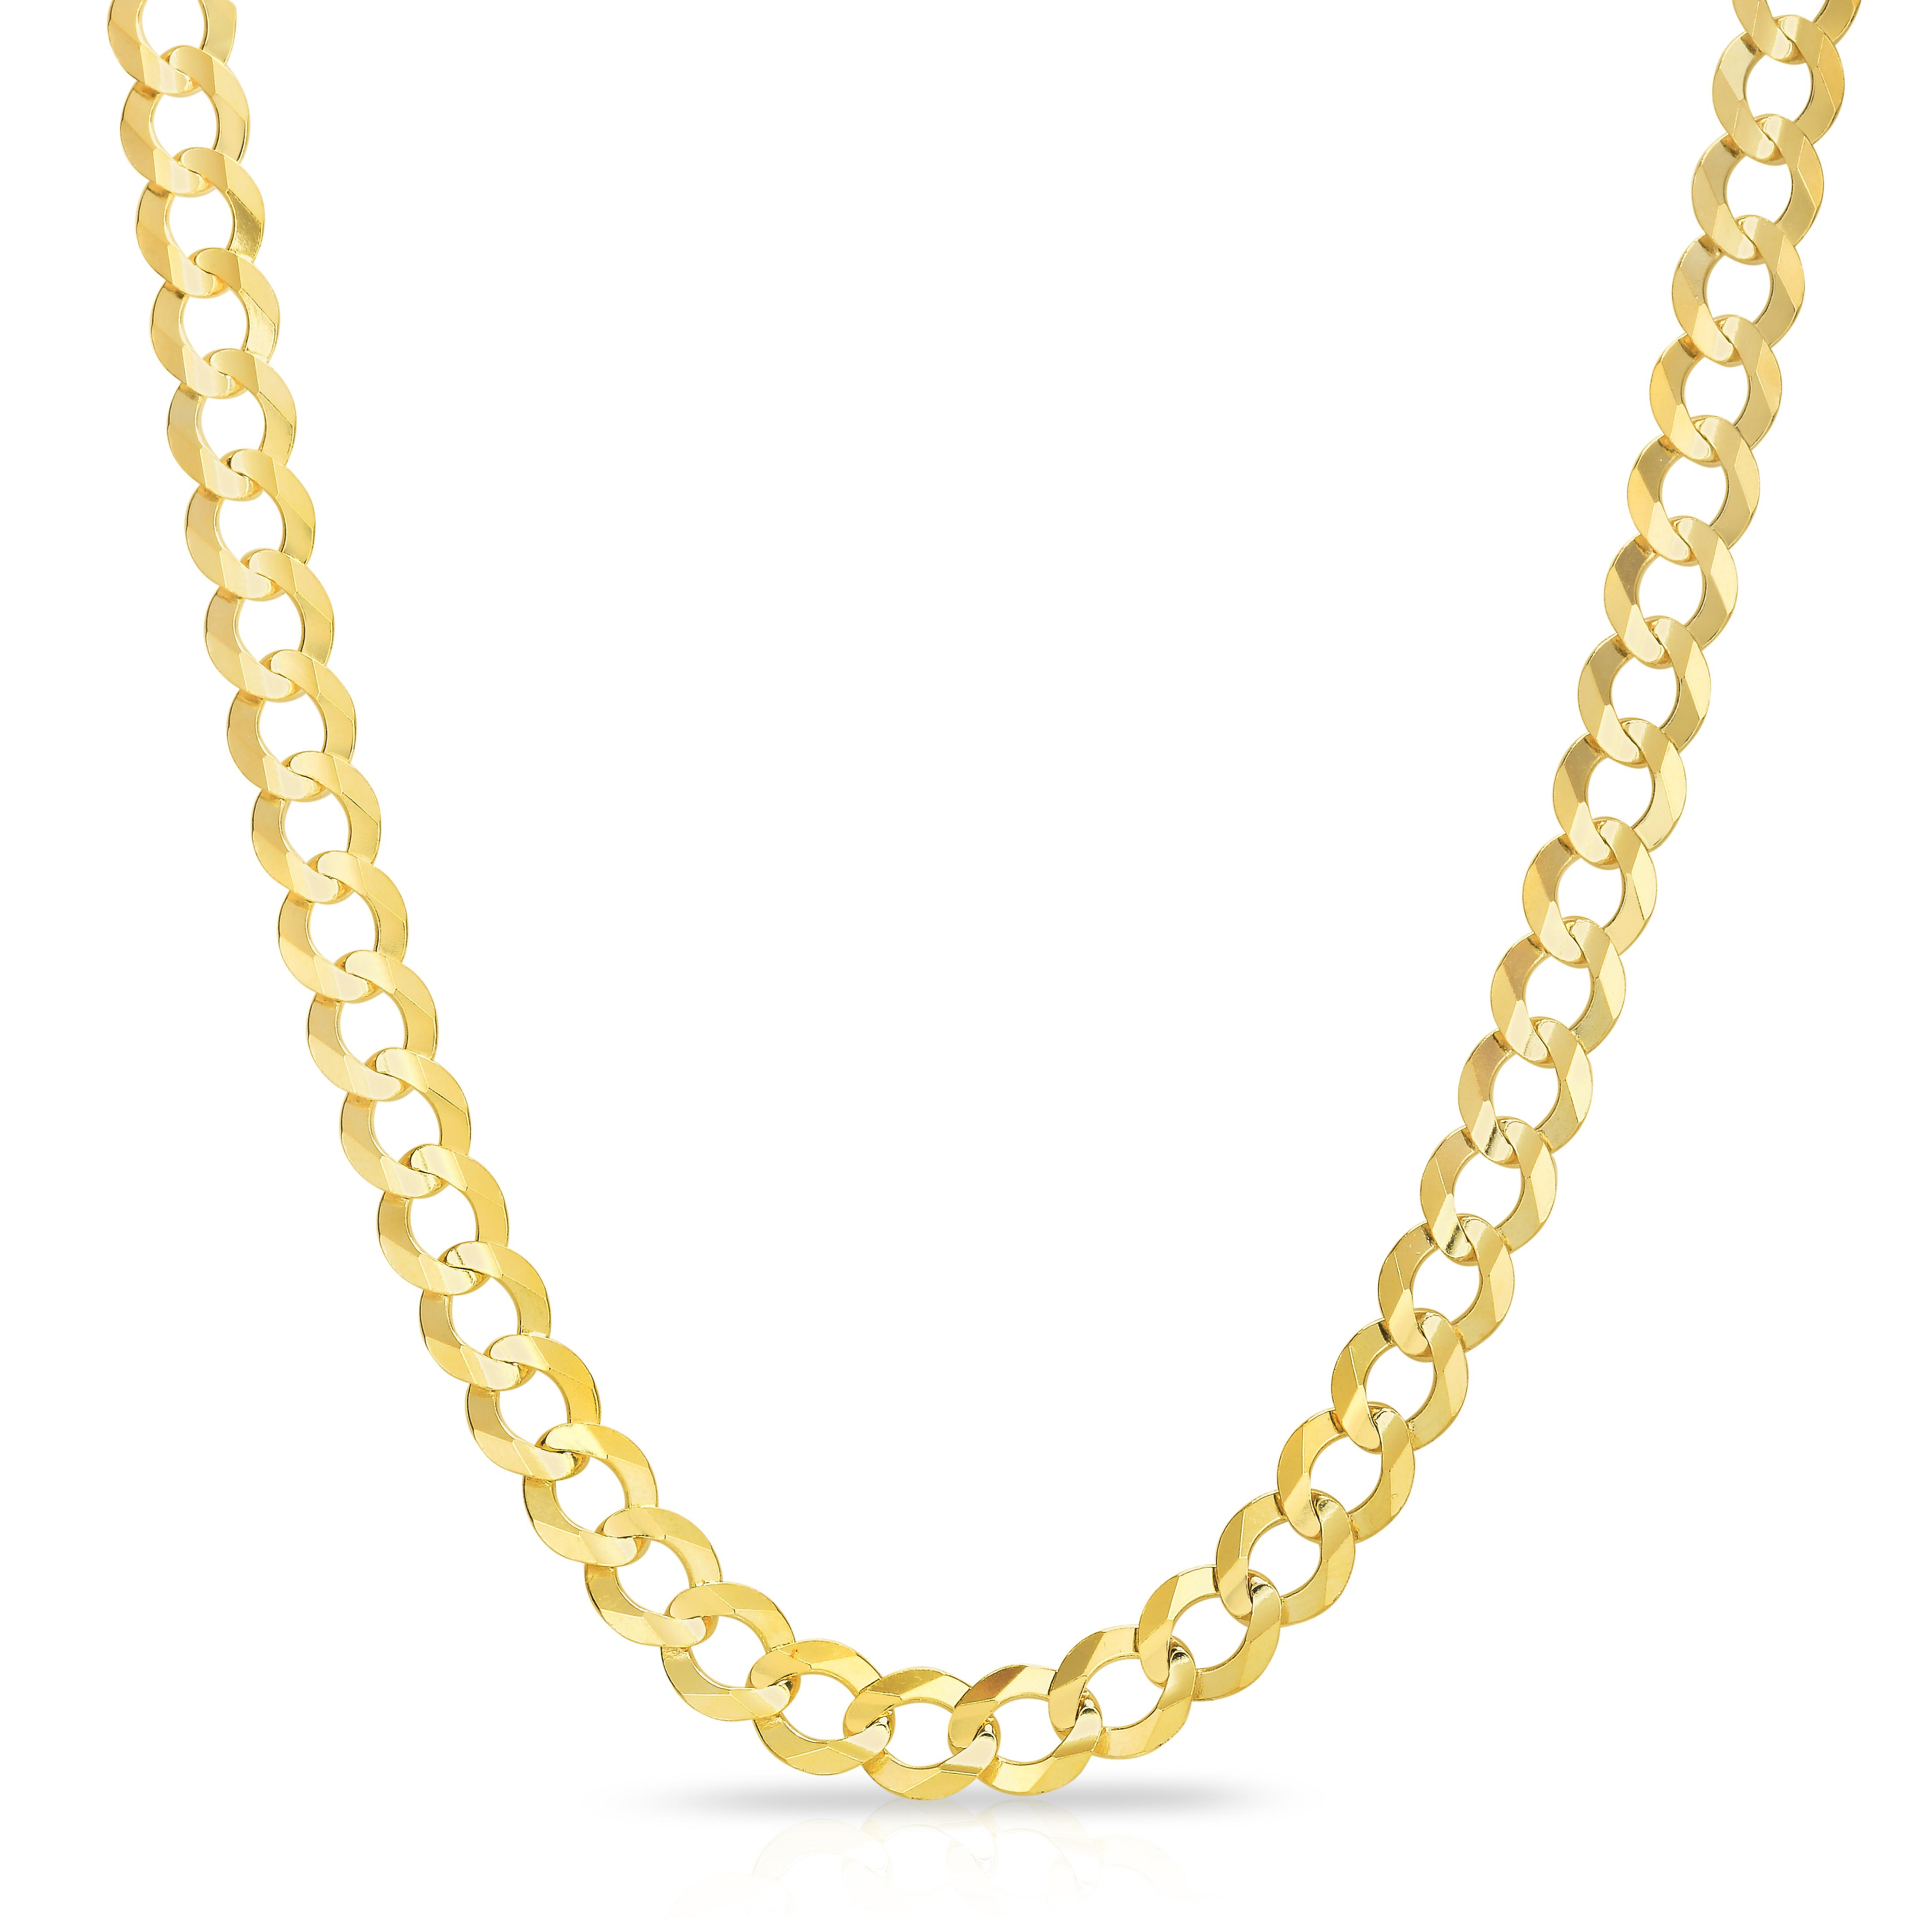 pendant inch all mens boutique large gold that morenista product necklace more